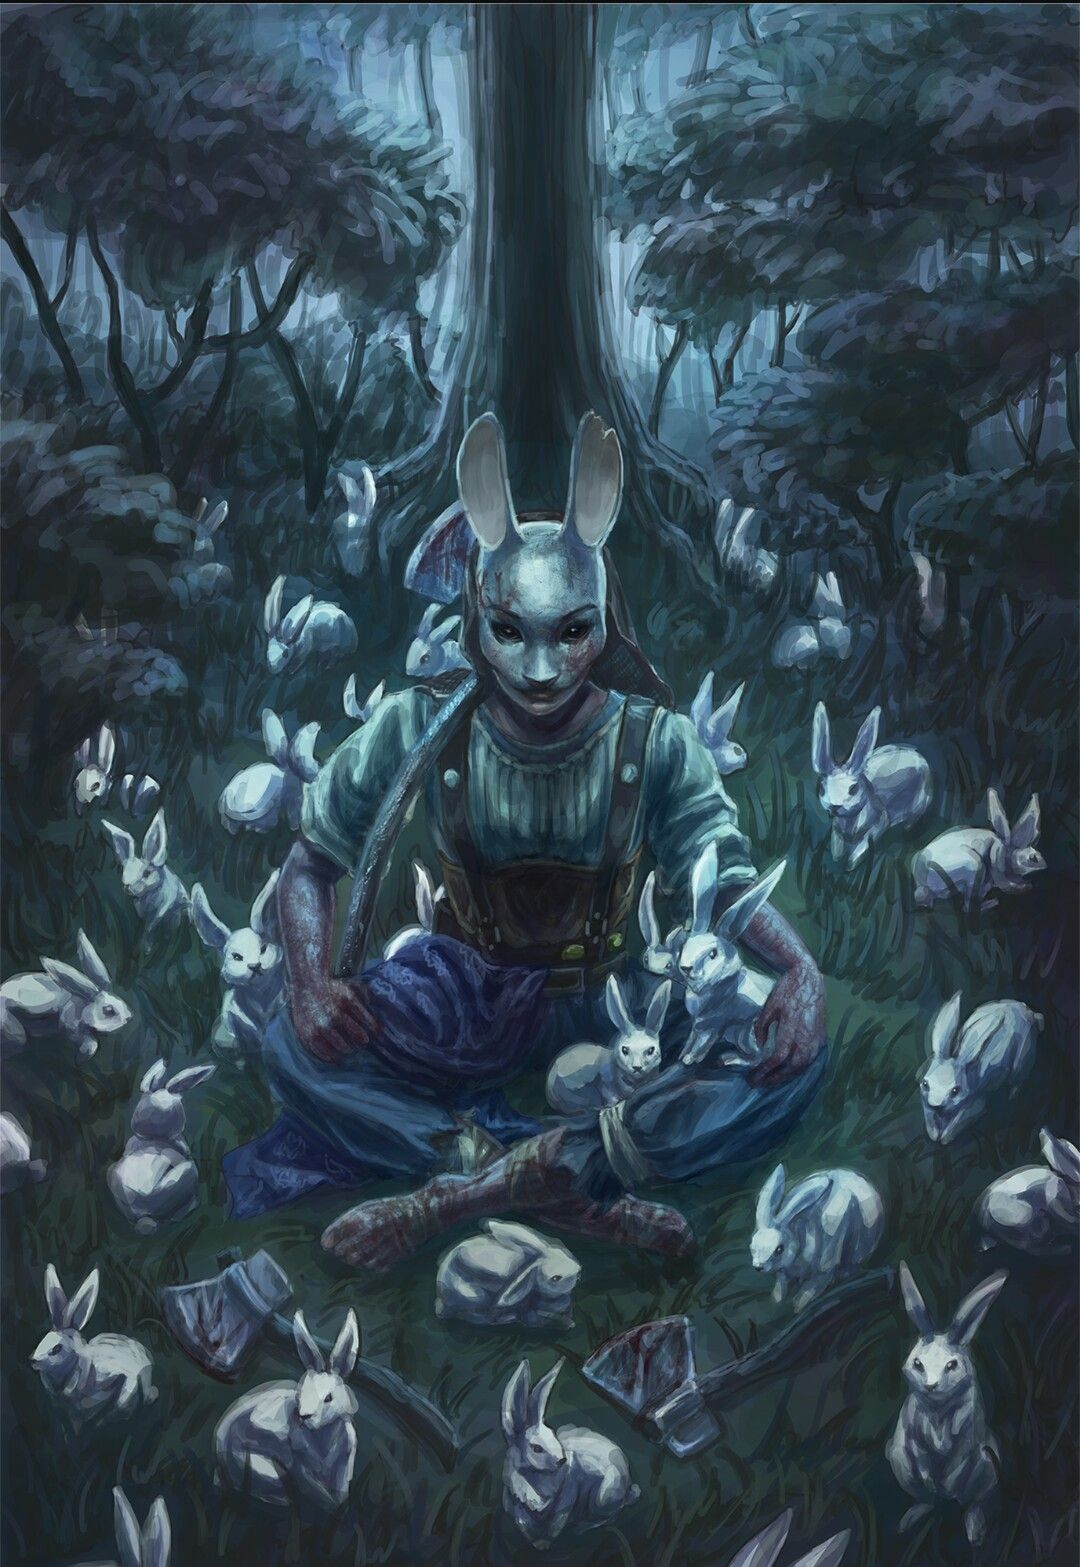 Dead By Daylight The Huntress Horror Characters Huntress Horror